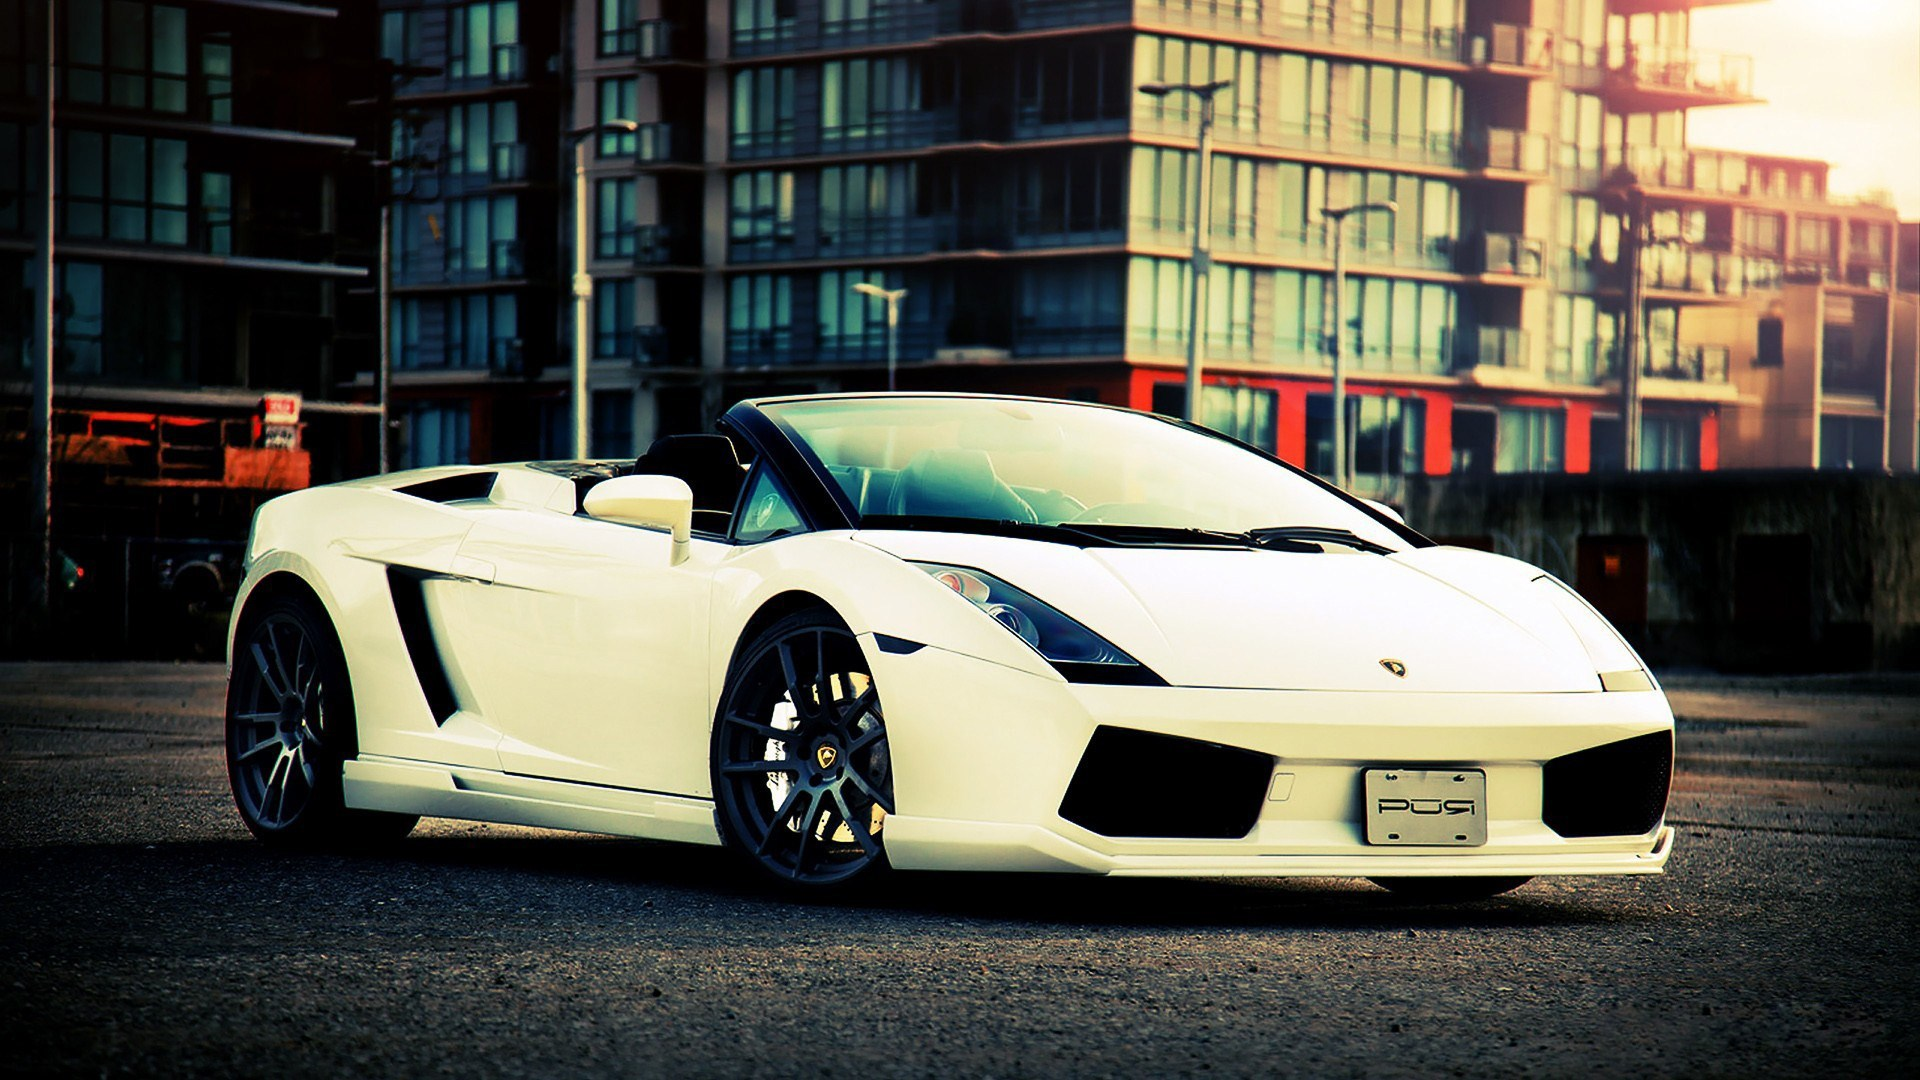 White Lamborghini Gallardo Spyder City Photo